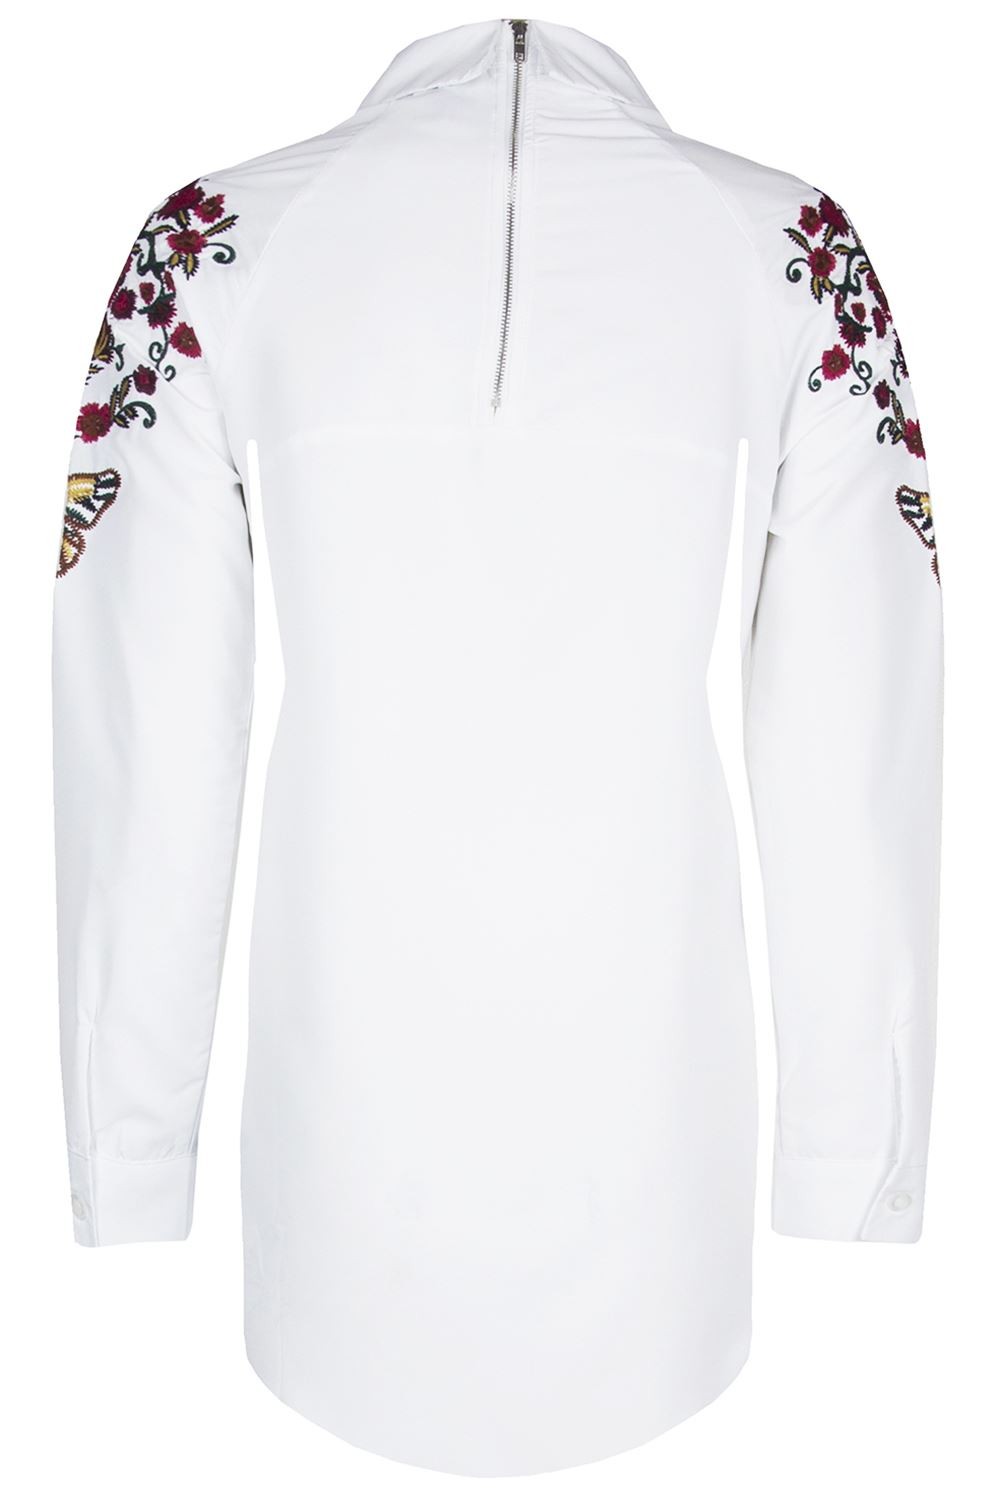 Womens Back Zip Up Shoulder Embroidery Floral Butterfly Shirt Curved Hem Dress